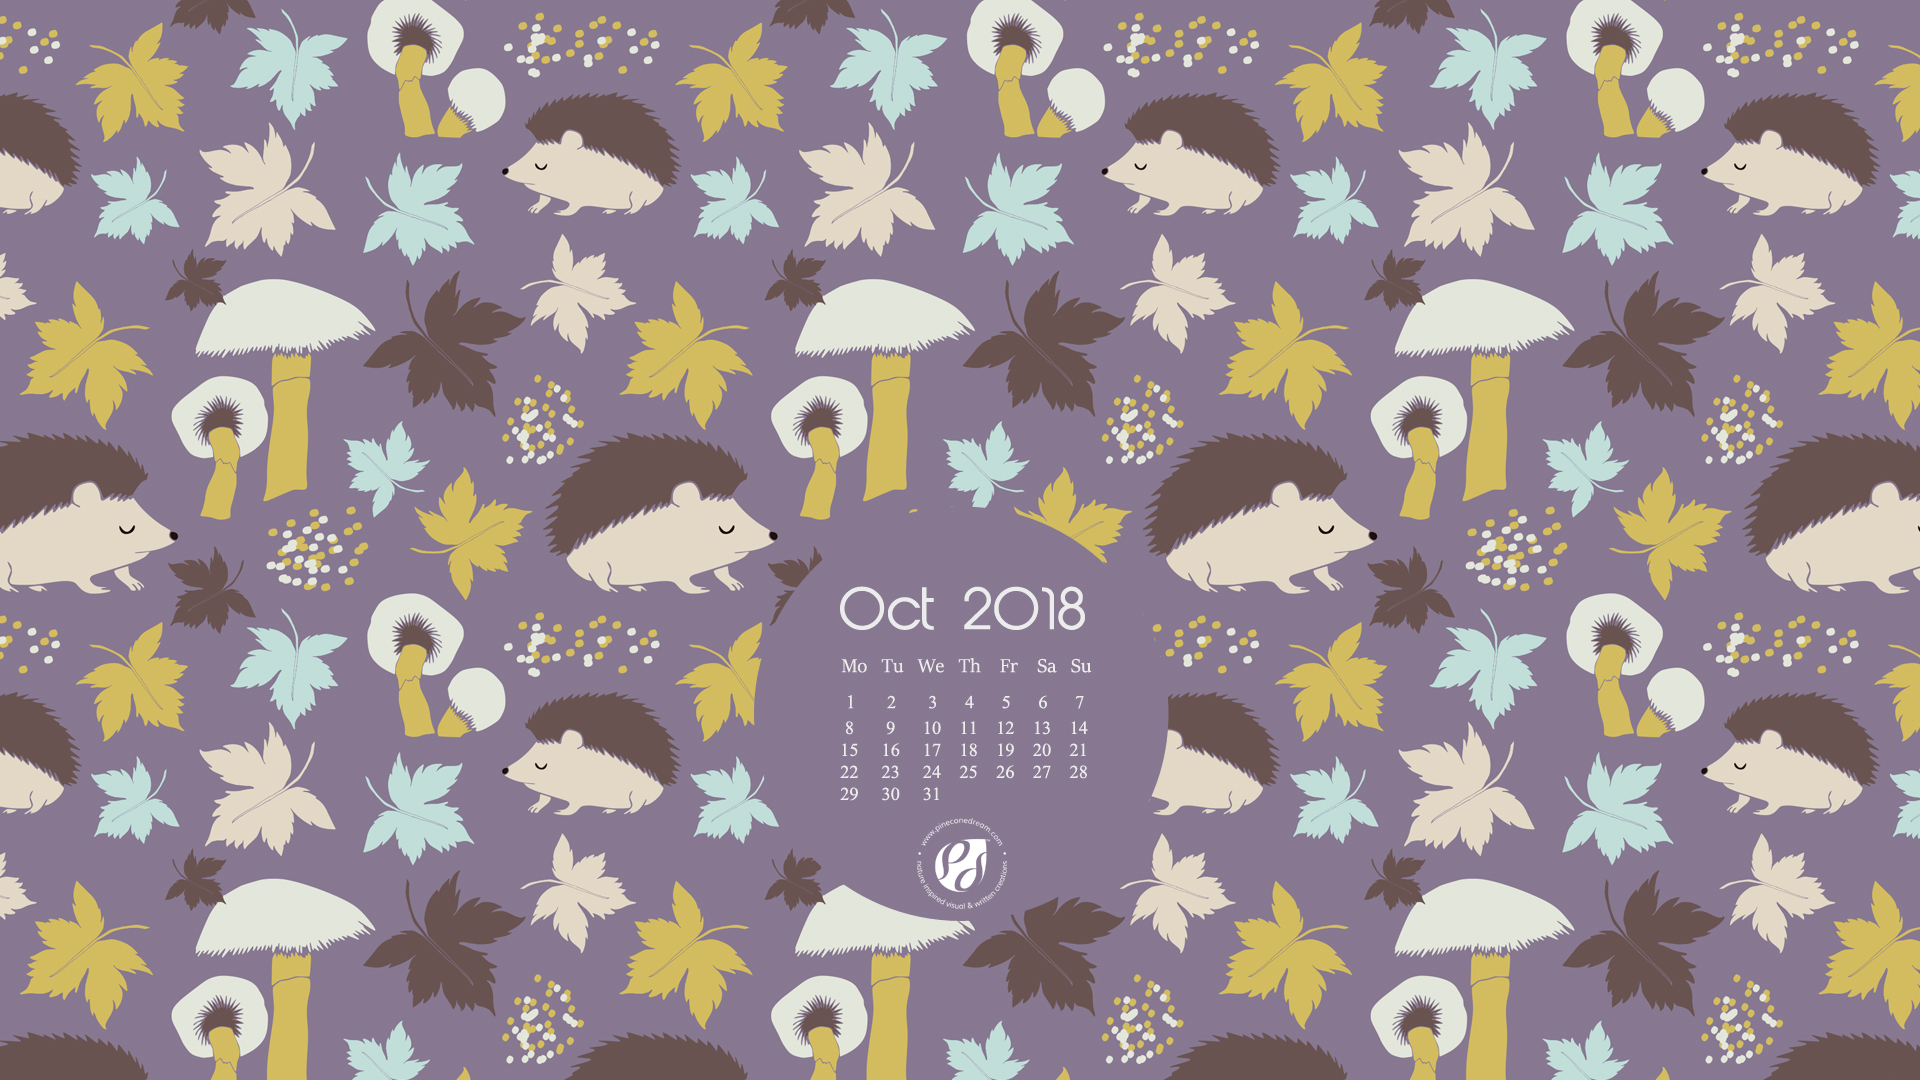 image relating to Printable Wallpaper titled Oct 2018 Totally free Wallpapers/Calendars Printable Planner